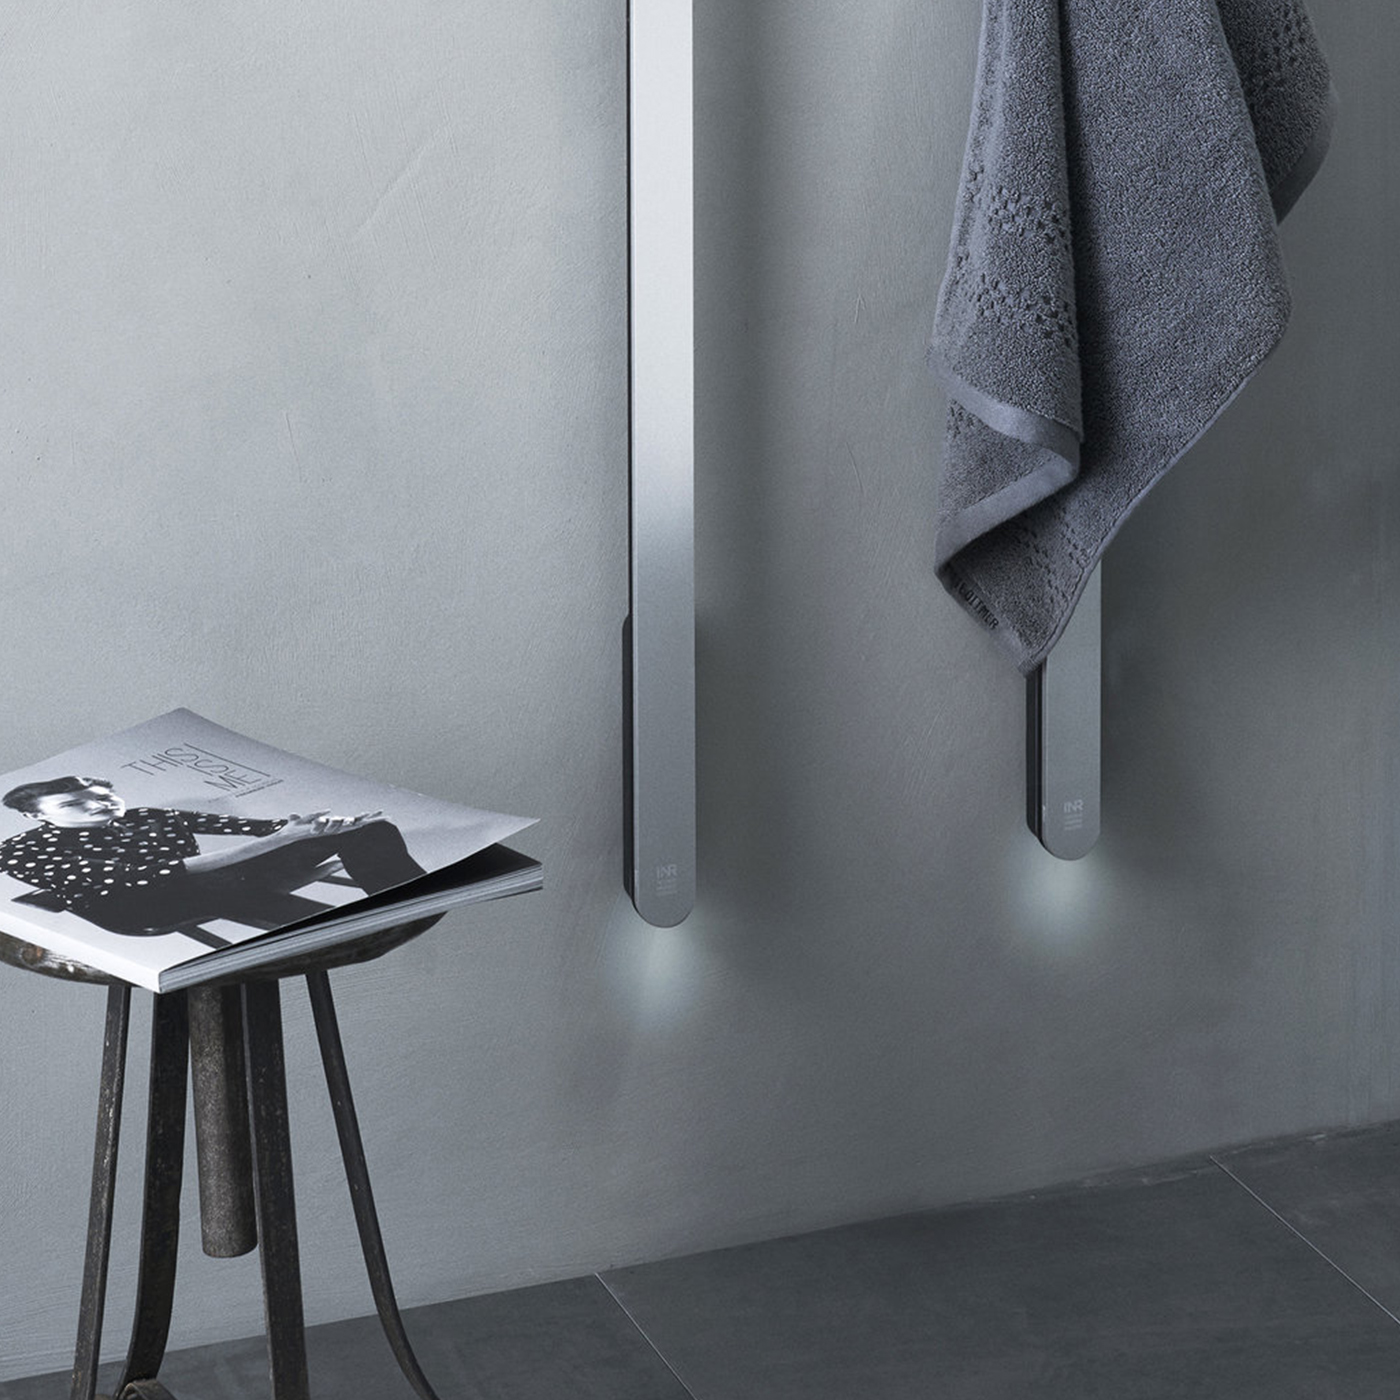 Iconic Nordic Rooms  A towel dryer worth showing off  Design research , Industrial design, Mechanical & Electronic engineering